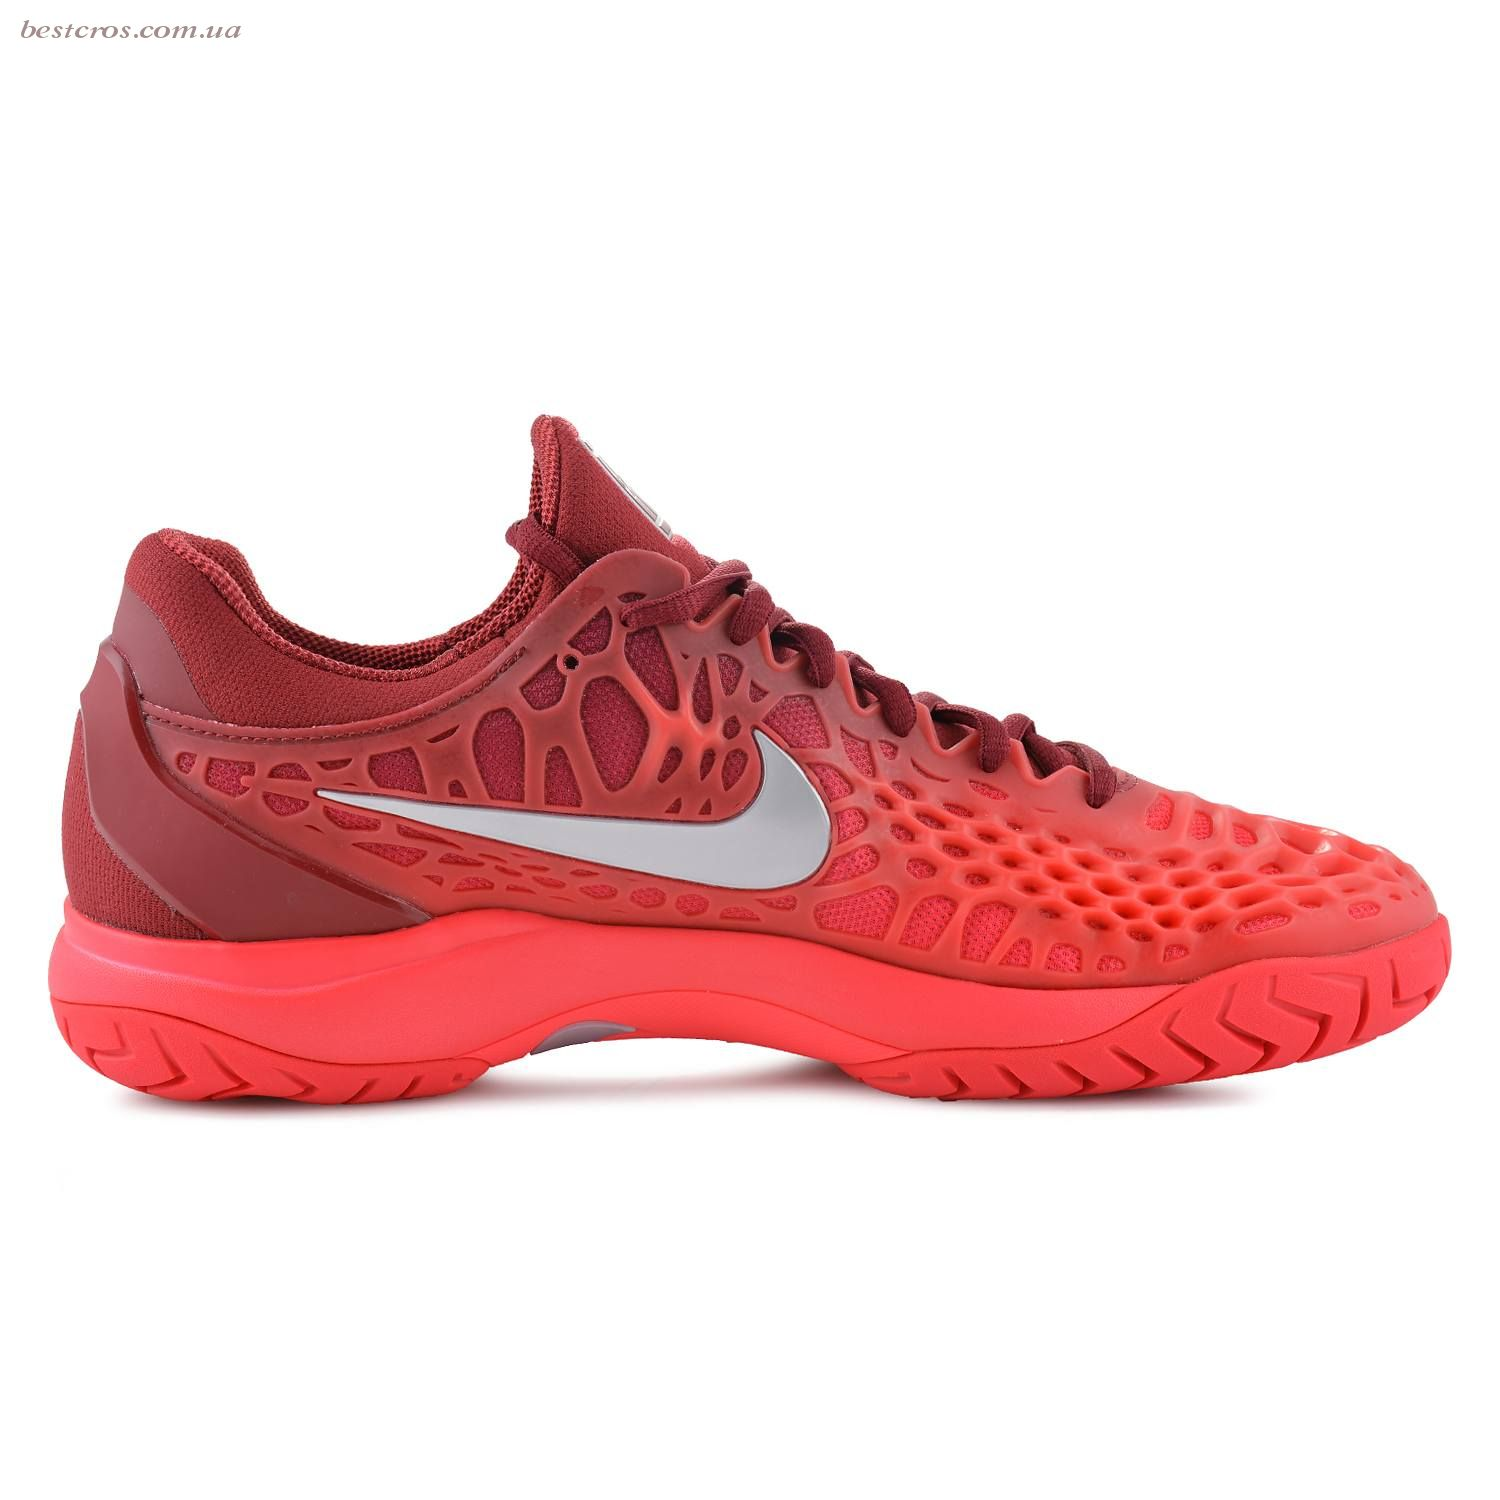 Женские кроссовки Nike Zoom Red